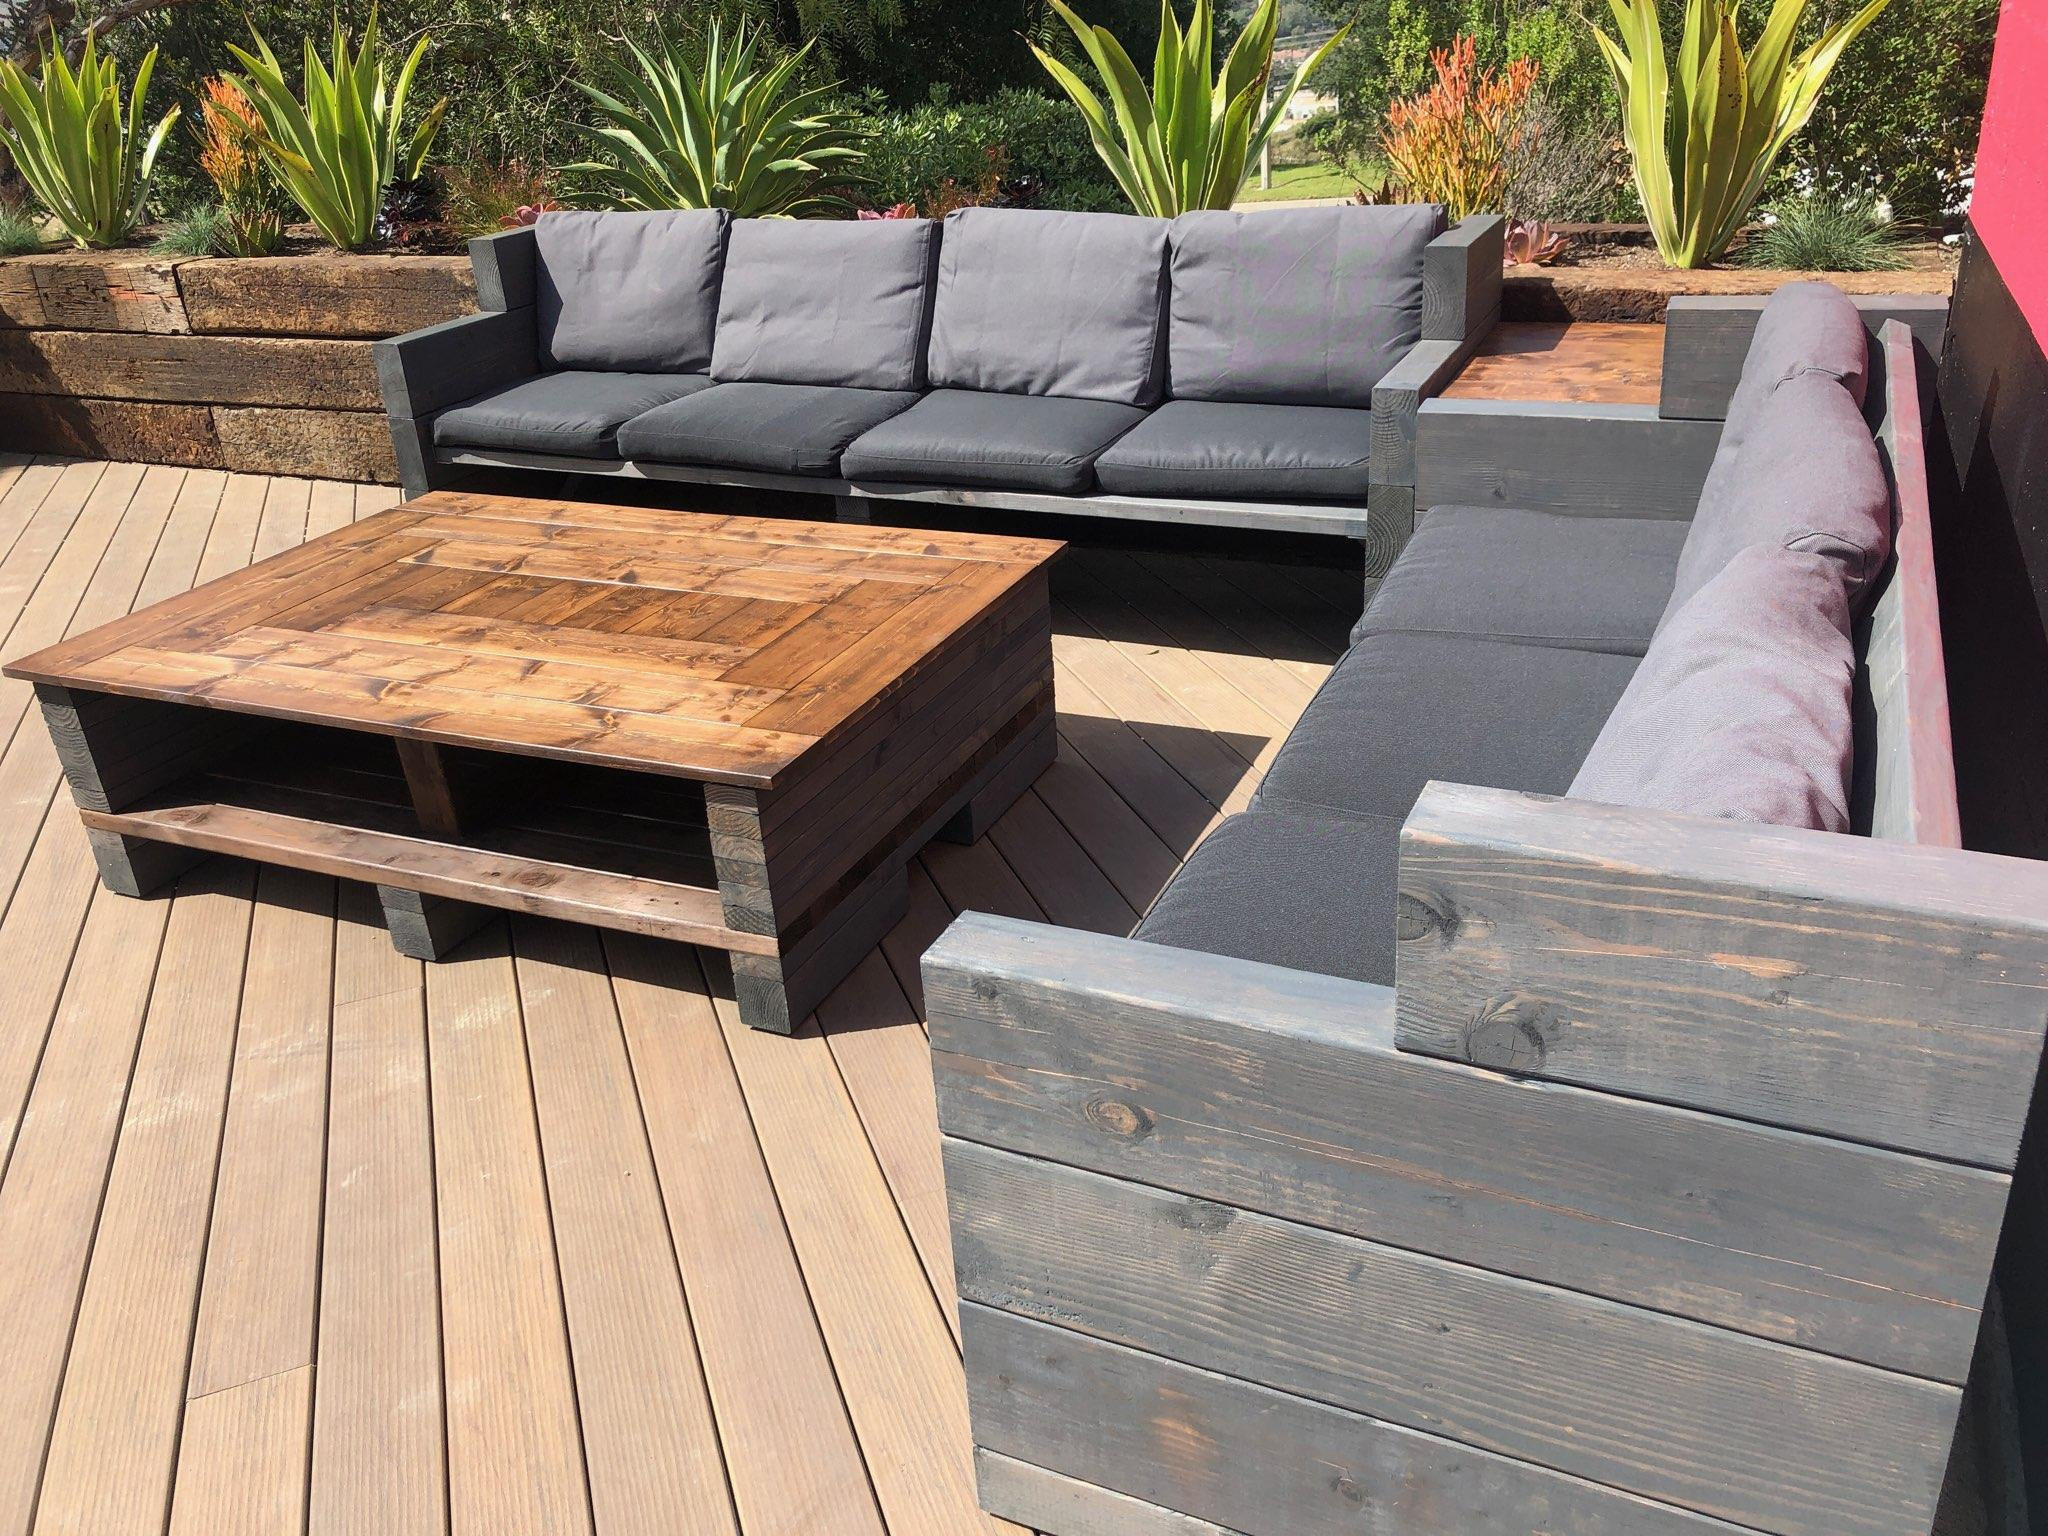 custom outdoor furniture farmhouse rustic wood patio set comfy outdoor sofas and table set 2 sofas 1 coffee table 1 side end table